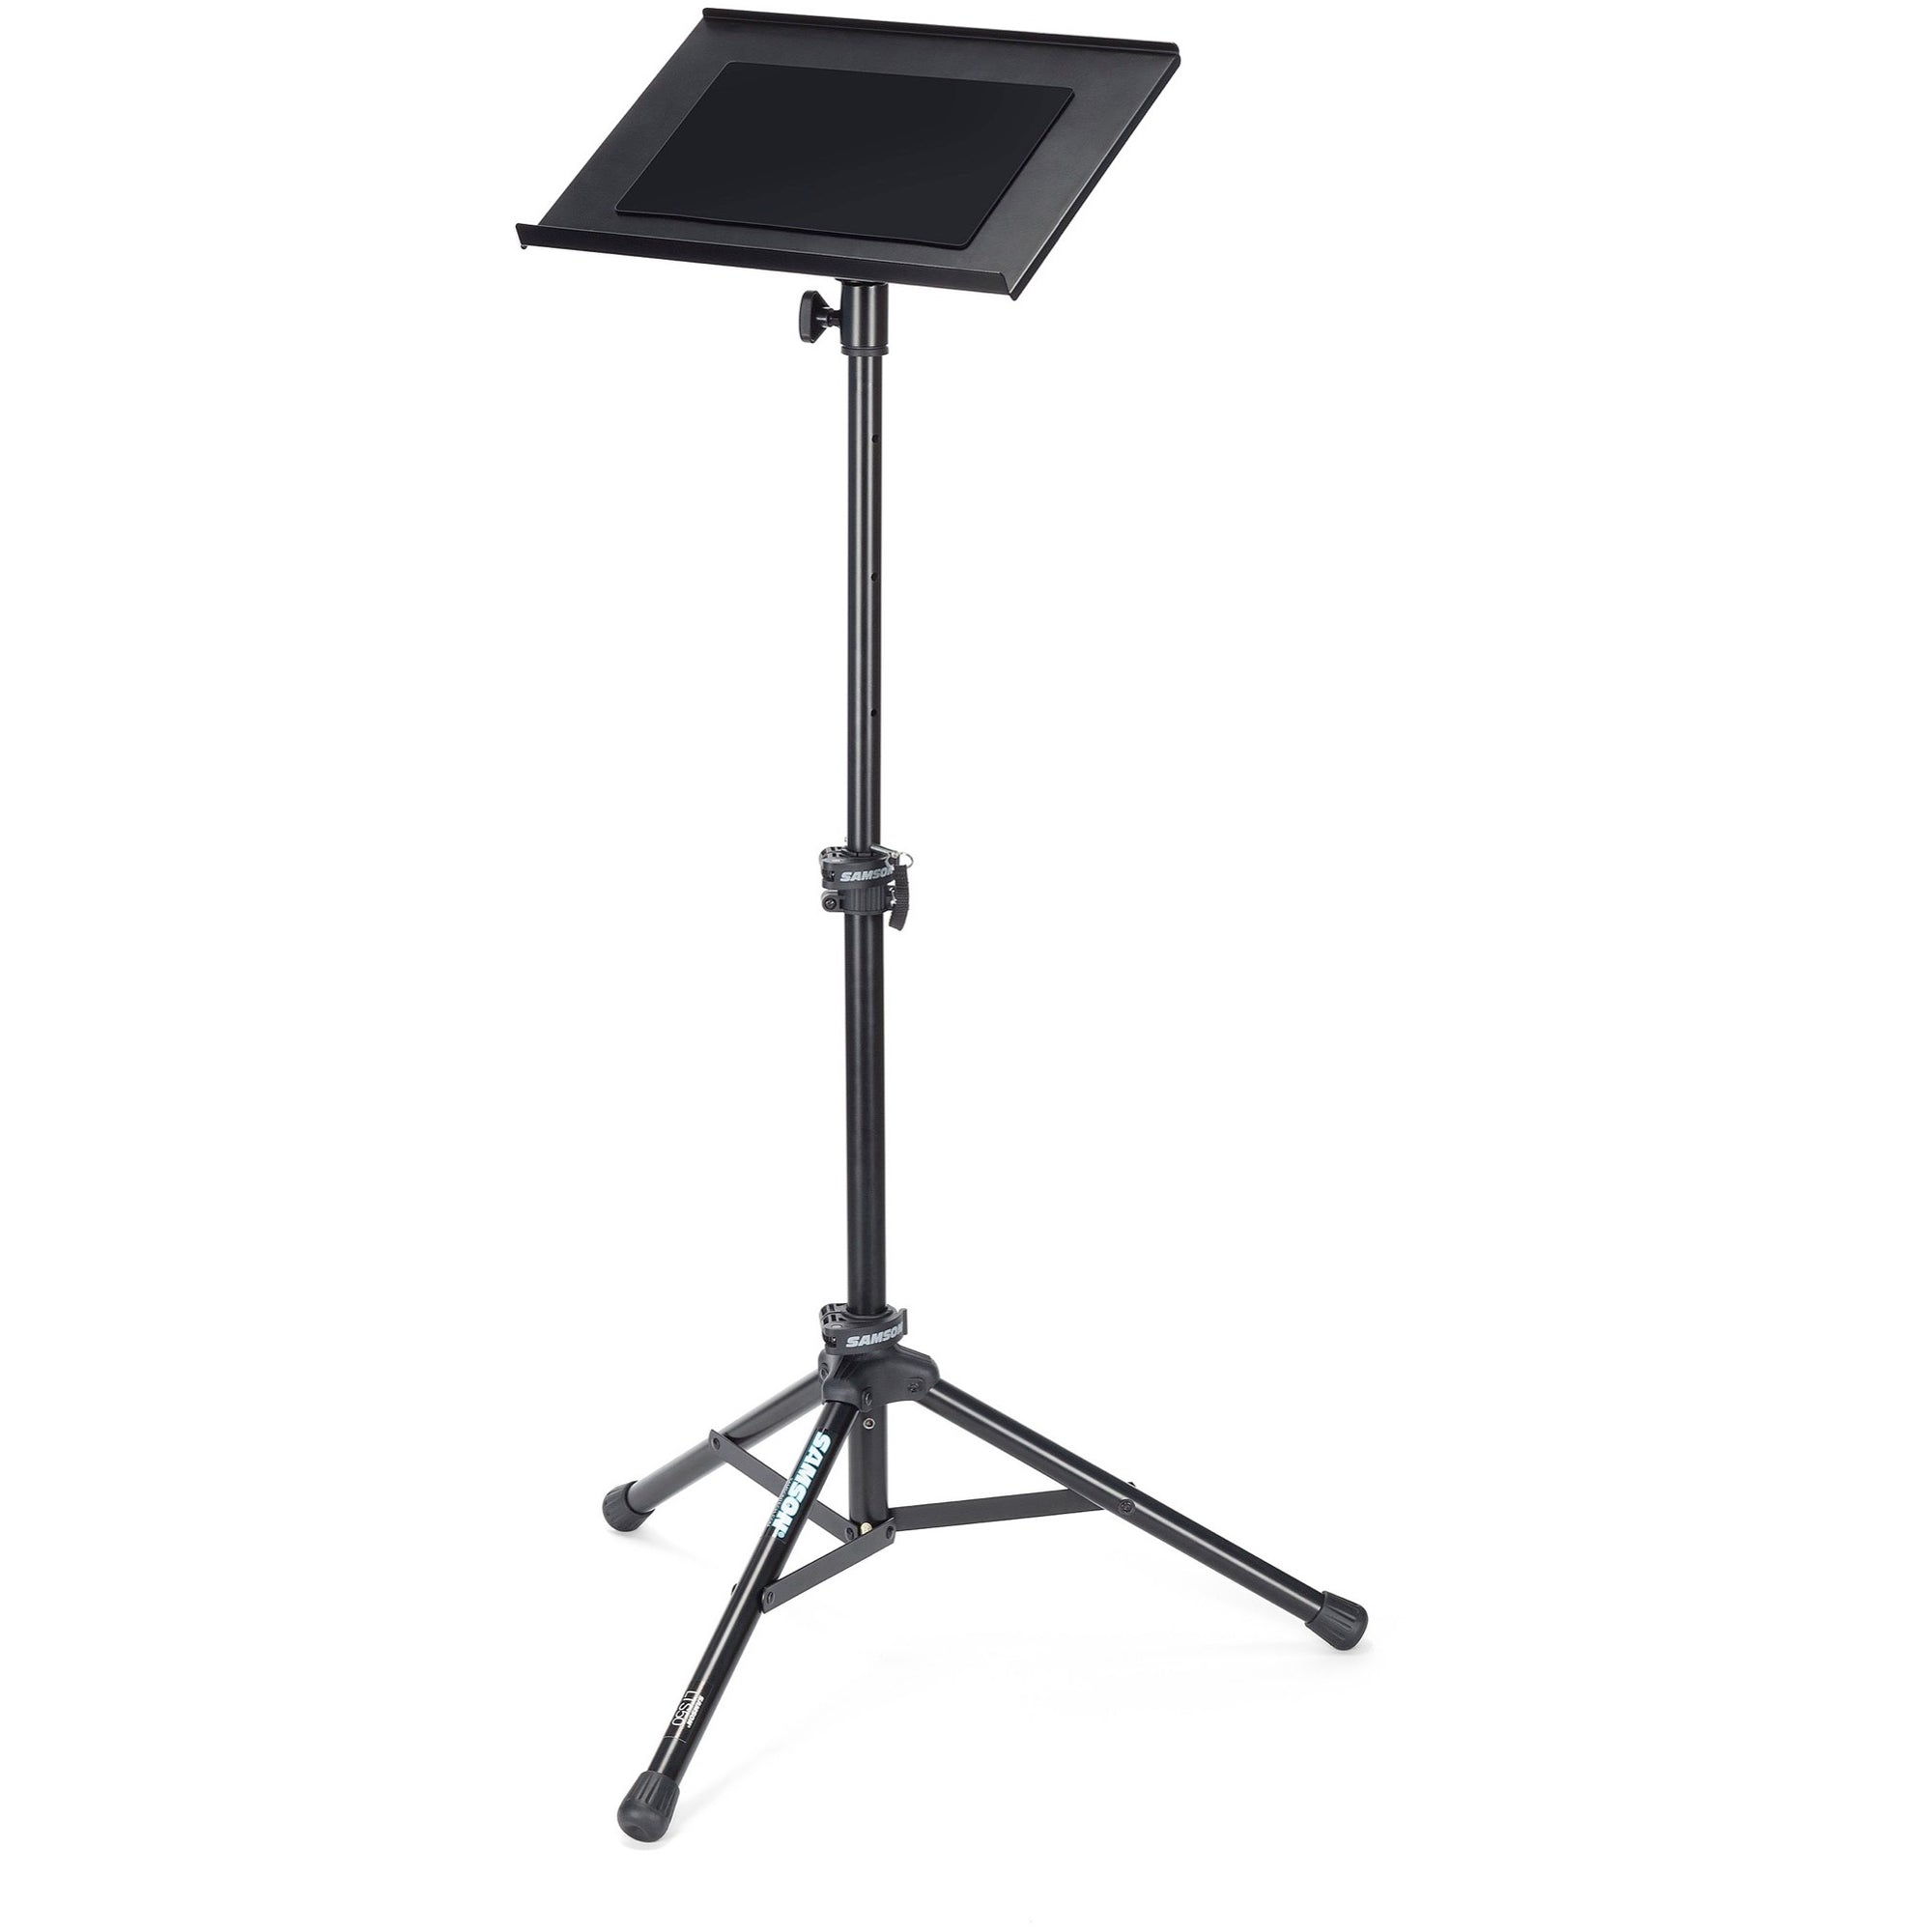 Samson LTS50 Heavy-Duty Folding Tripod Laptop Stand